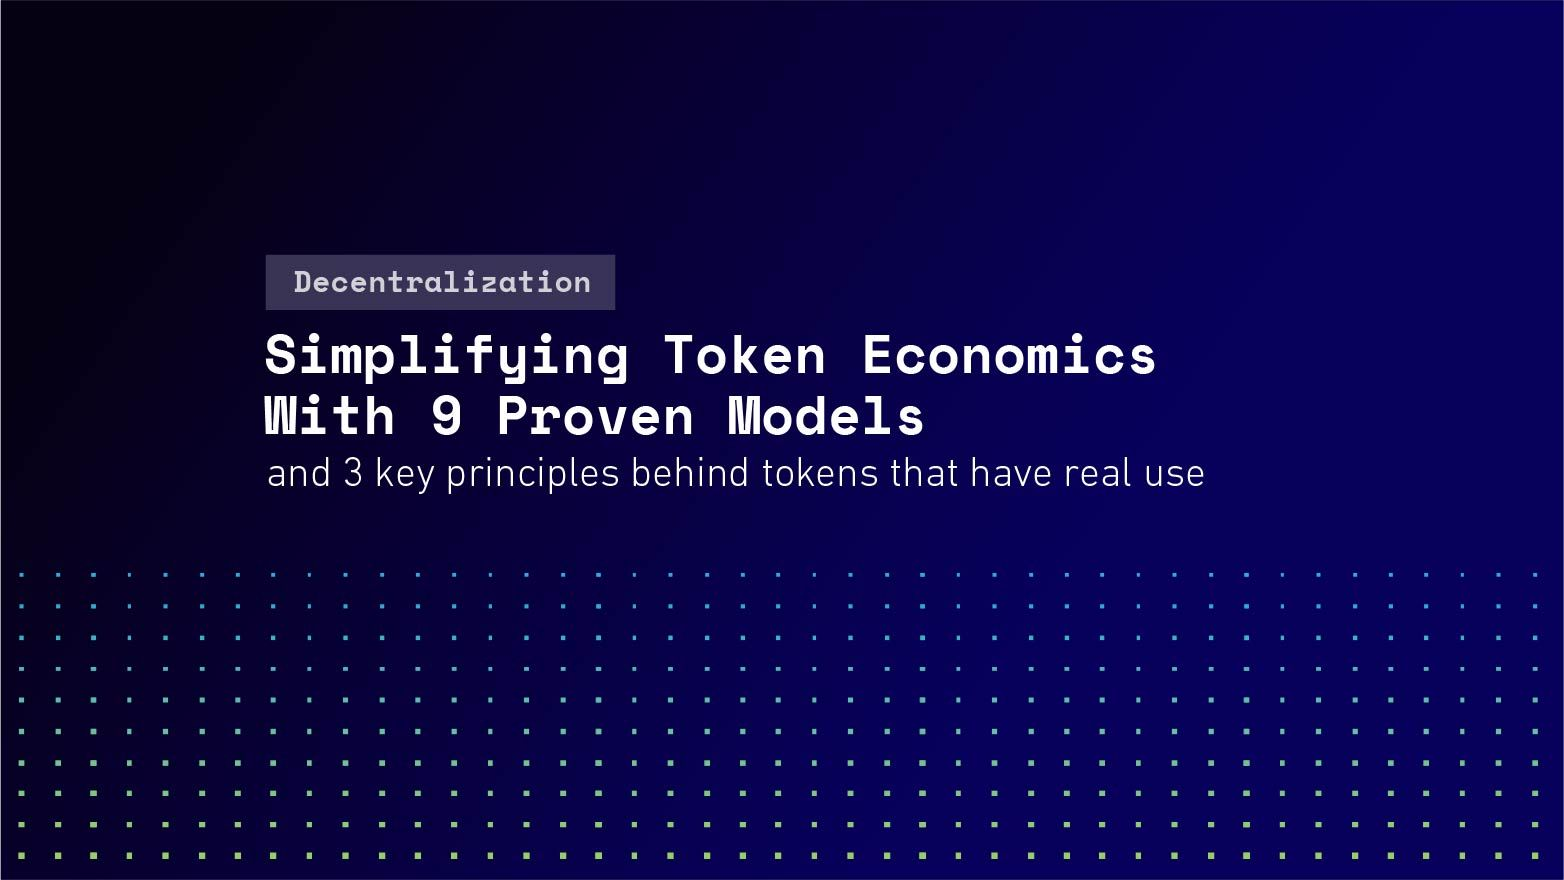 Simplifying Token Economics With 9 Proven Models